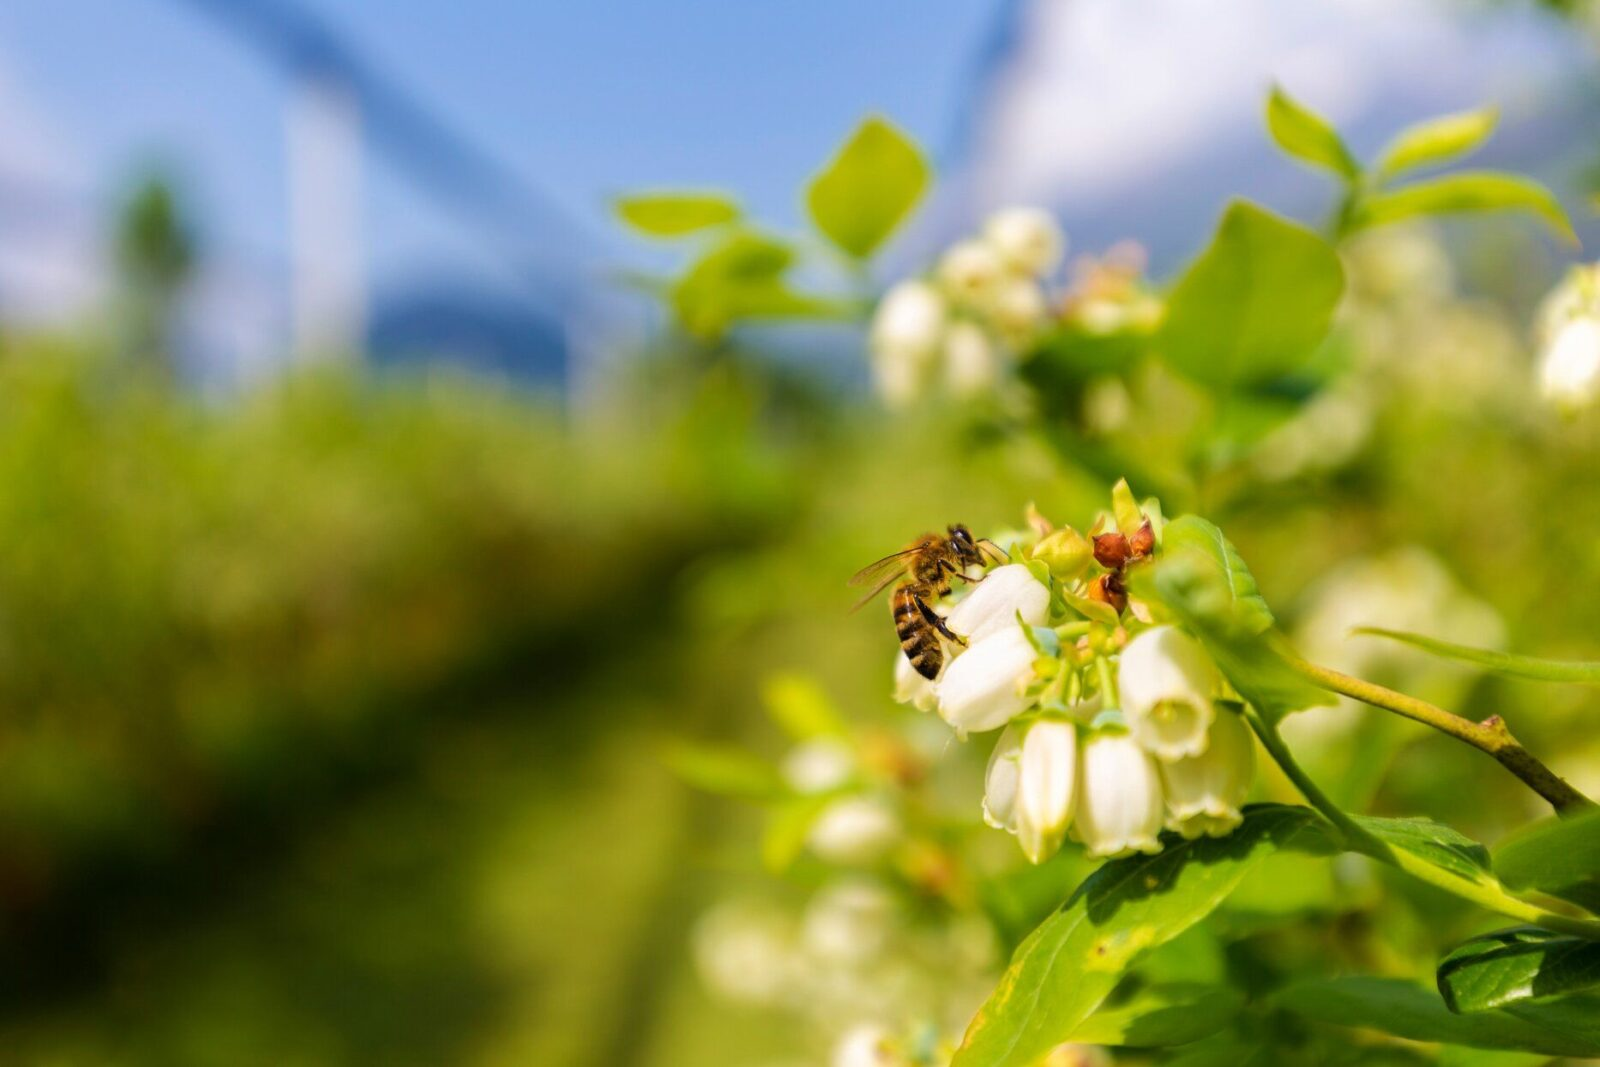 A Gardener's Guide to Identifying the Most Common Types of Bees